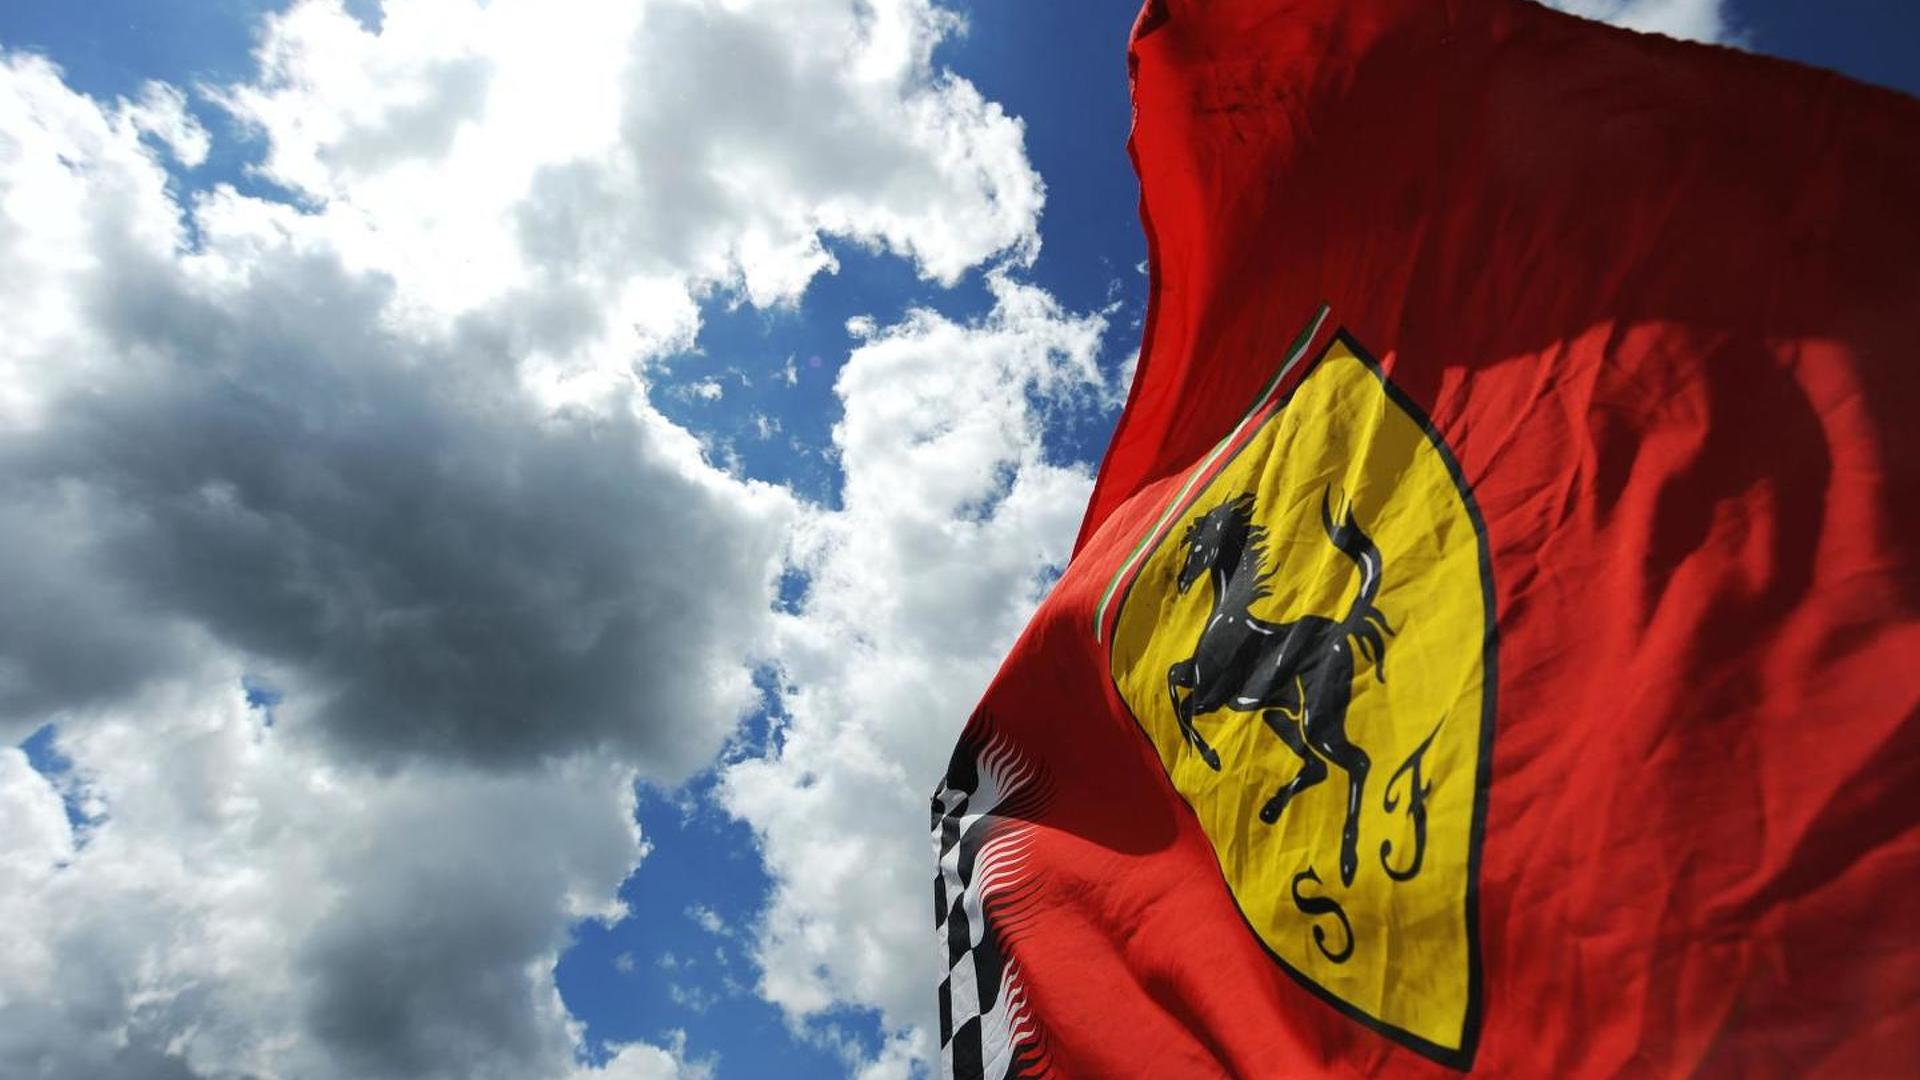 Ferrari Ipo Launched Stock To Be Listed On The Nyse Under The Symbol Race